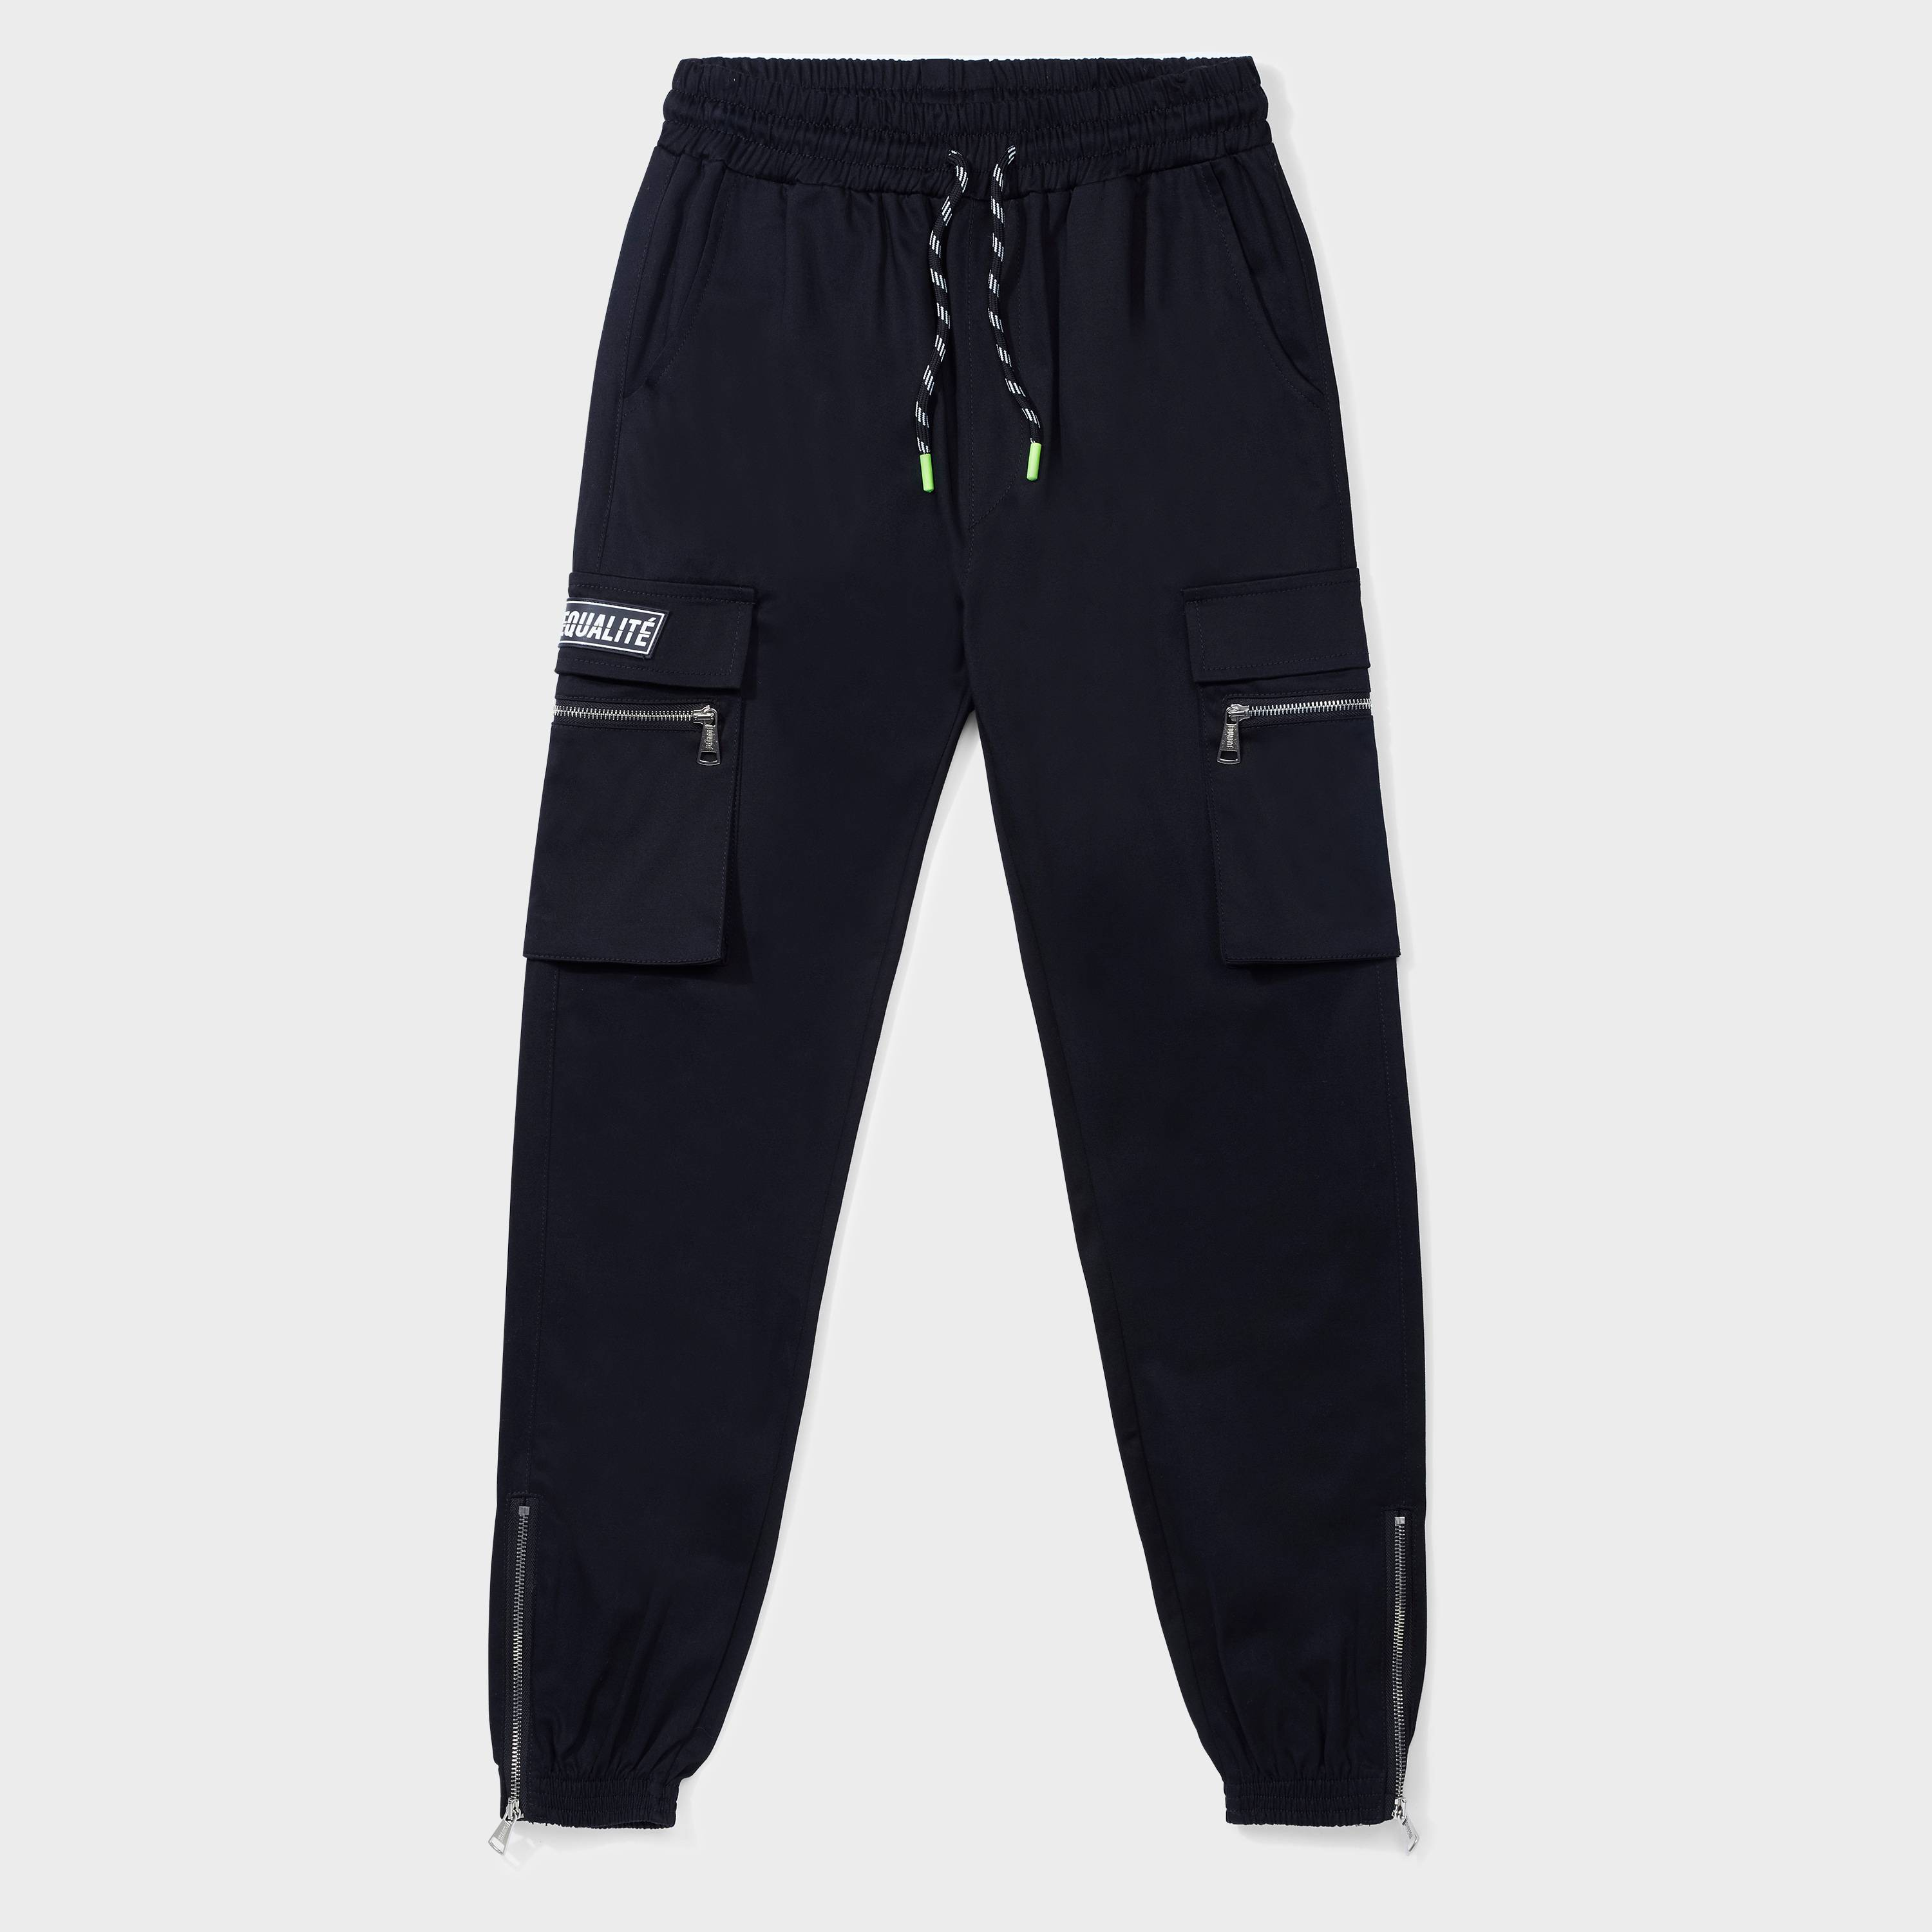 FUTURE CARGO PANTS BLACK-1